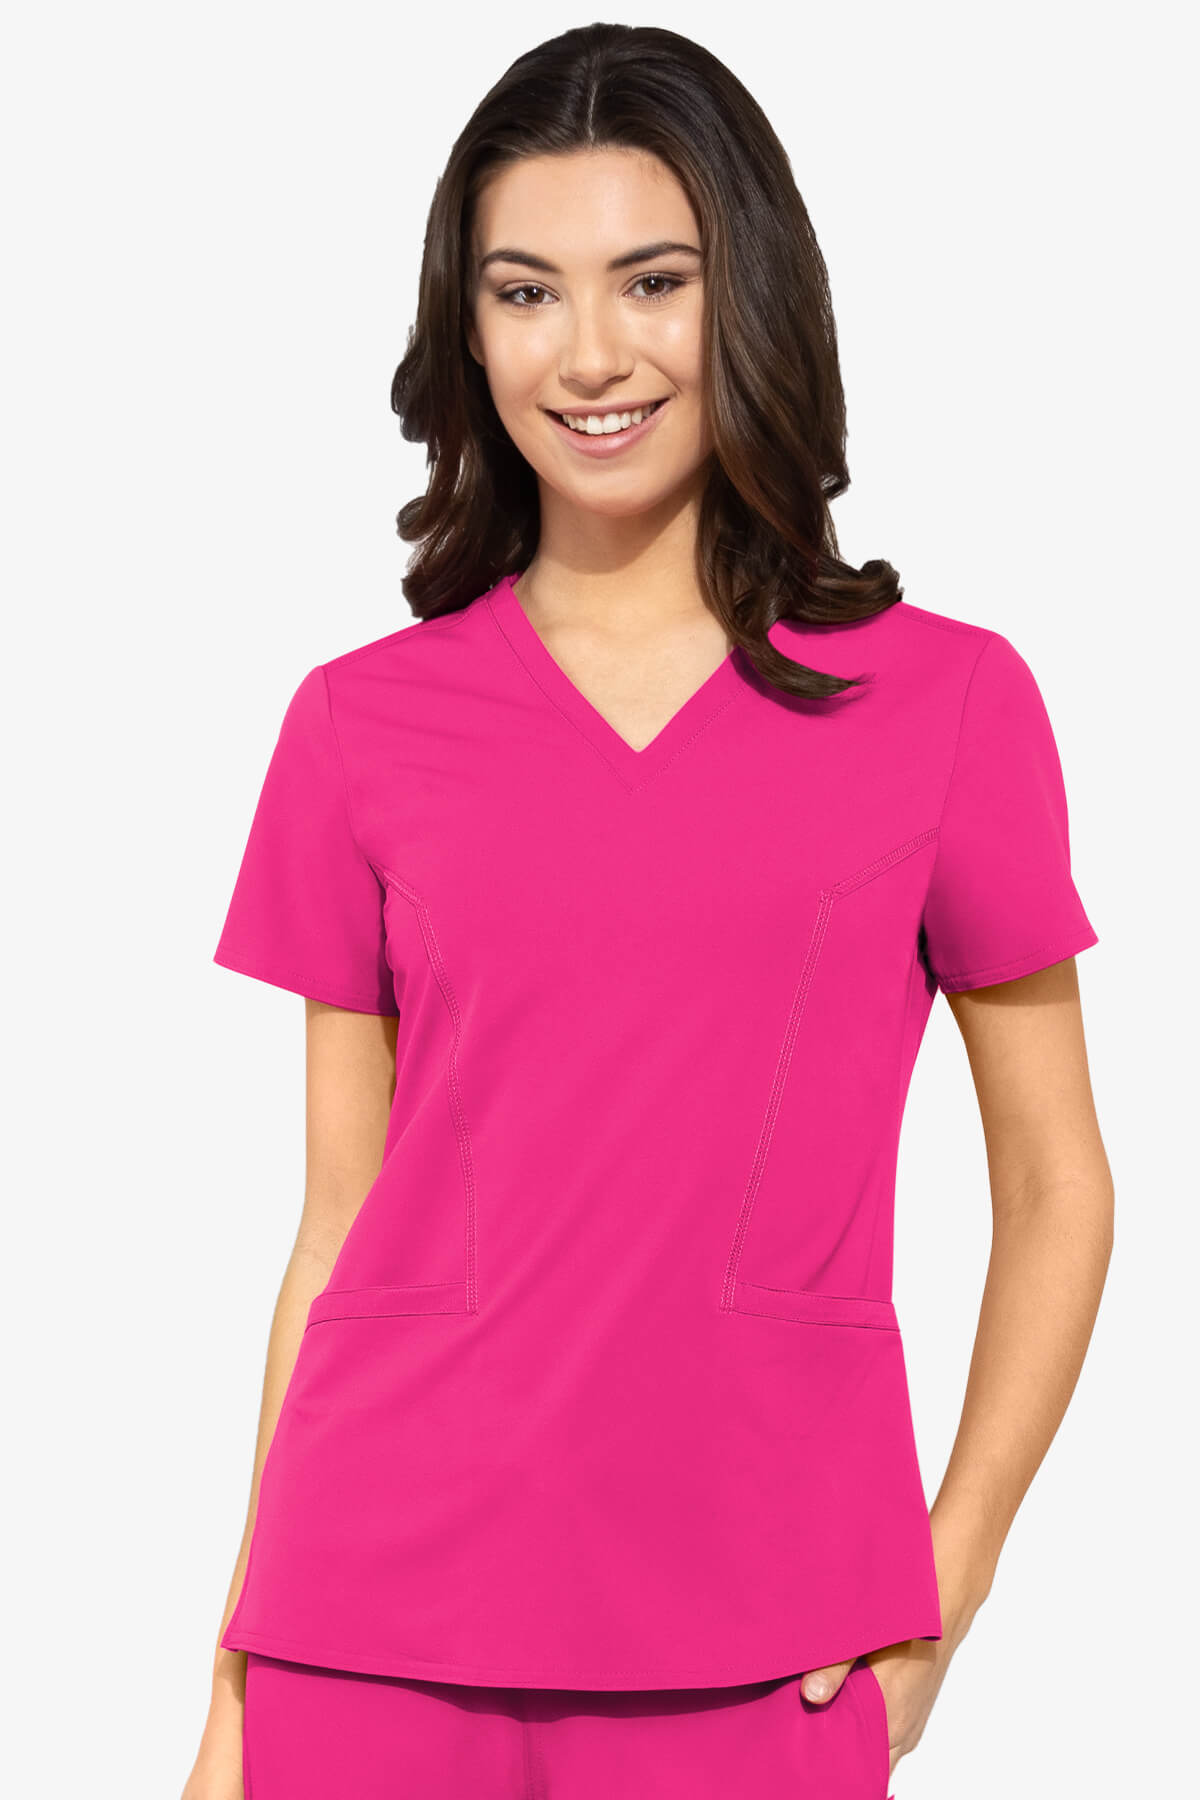 Women's Mirror V-Neck Solid Scrub Top - Pure Hearts Scrubs